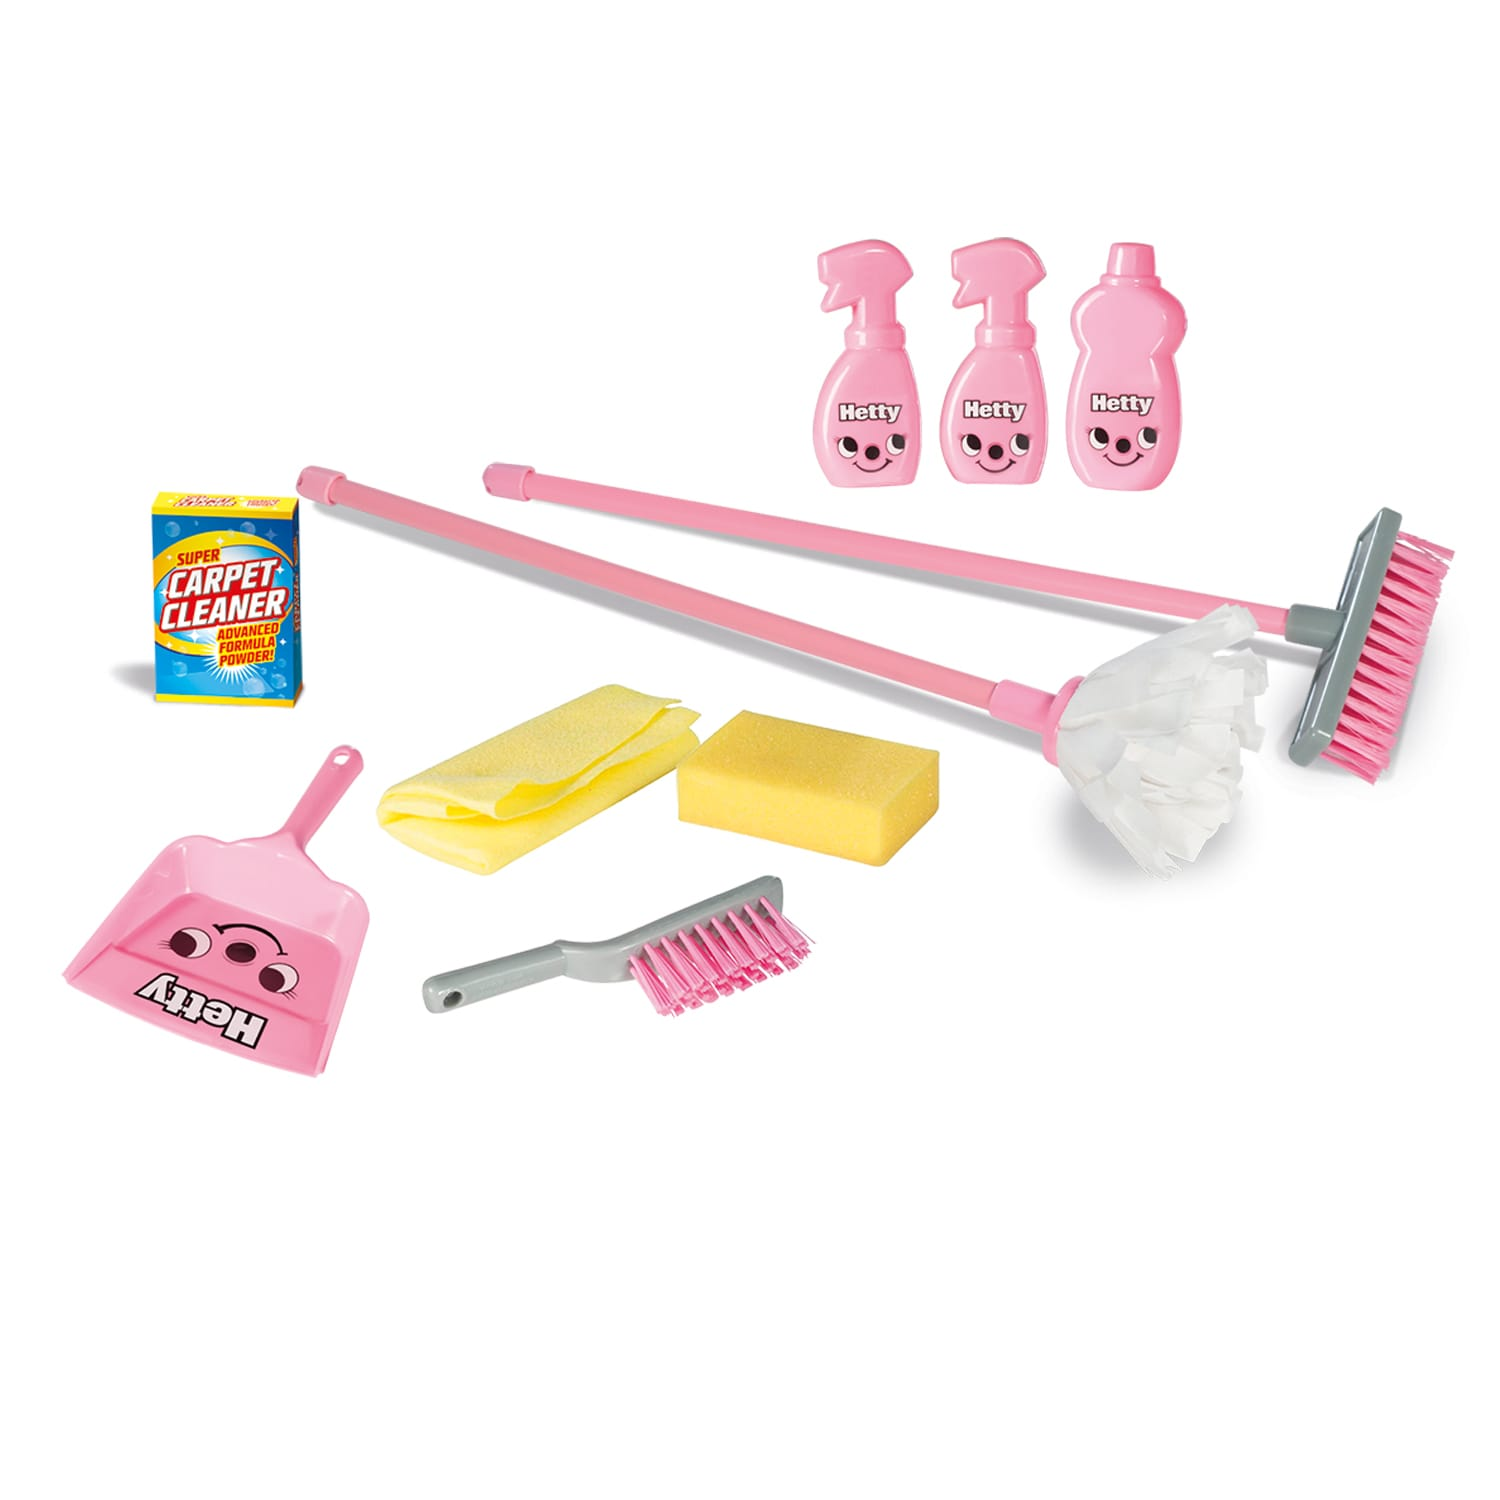 Hetty Household Cleaning Set For Housework Role Play